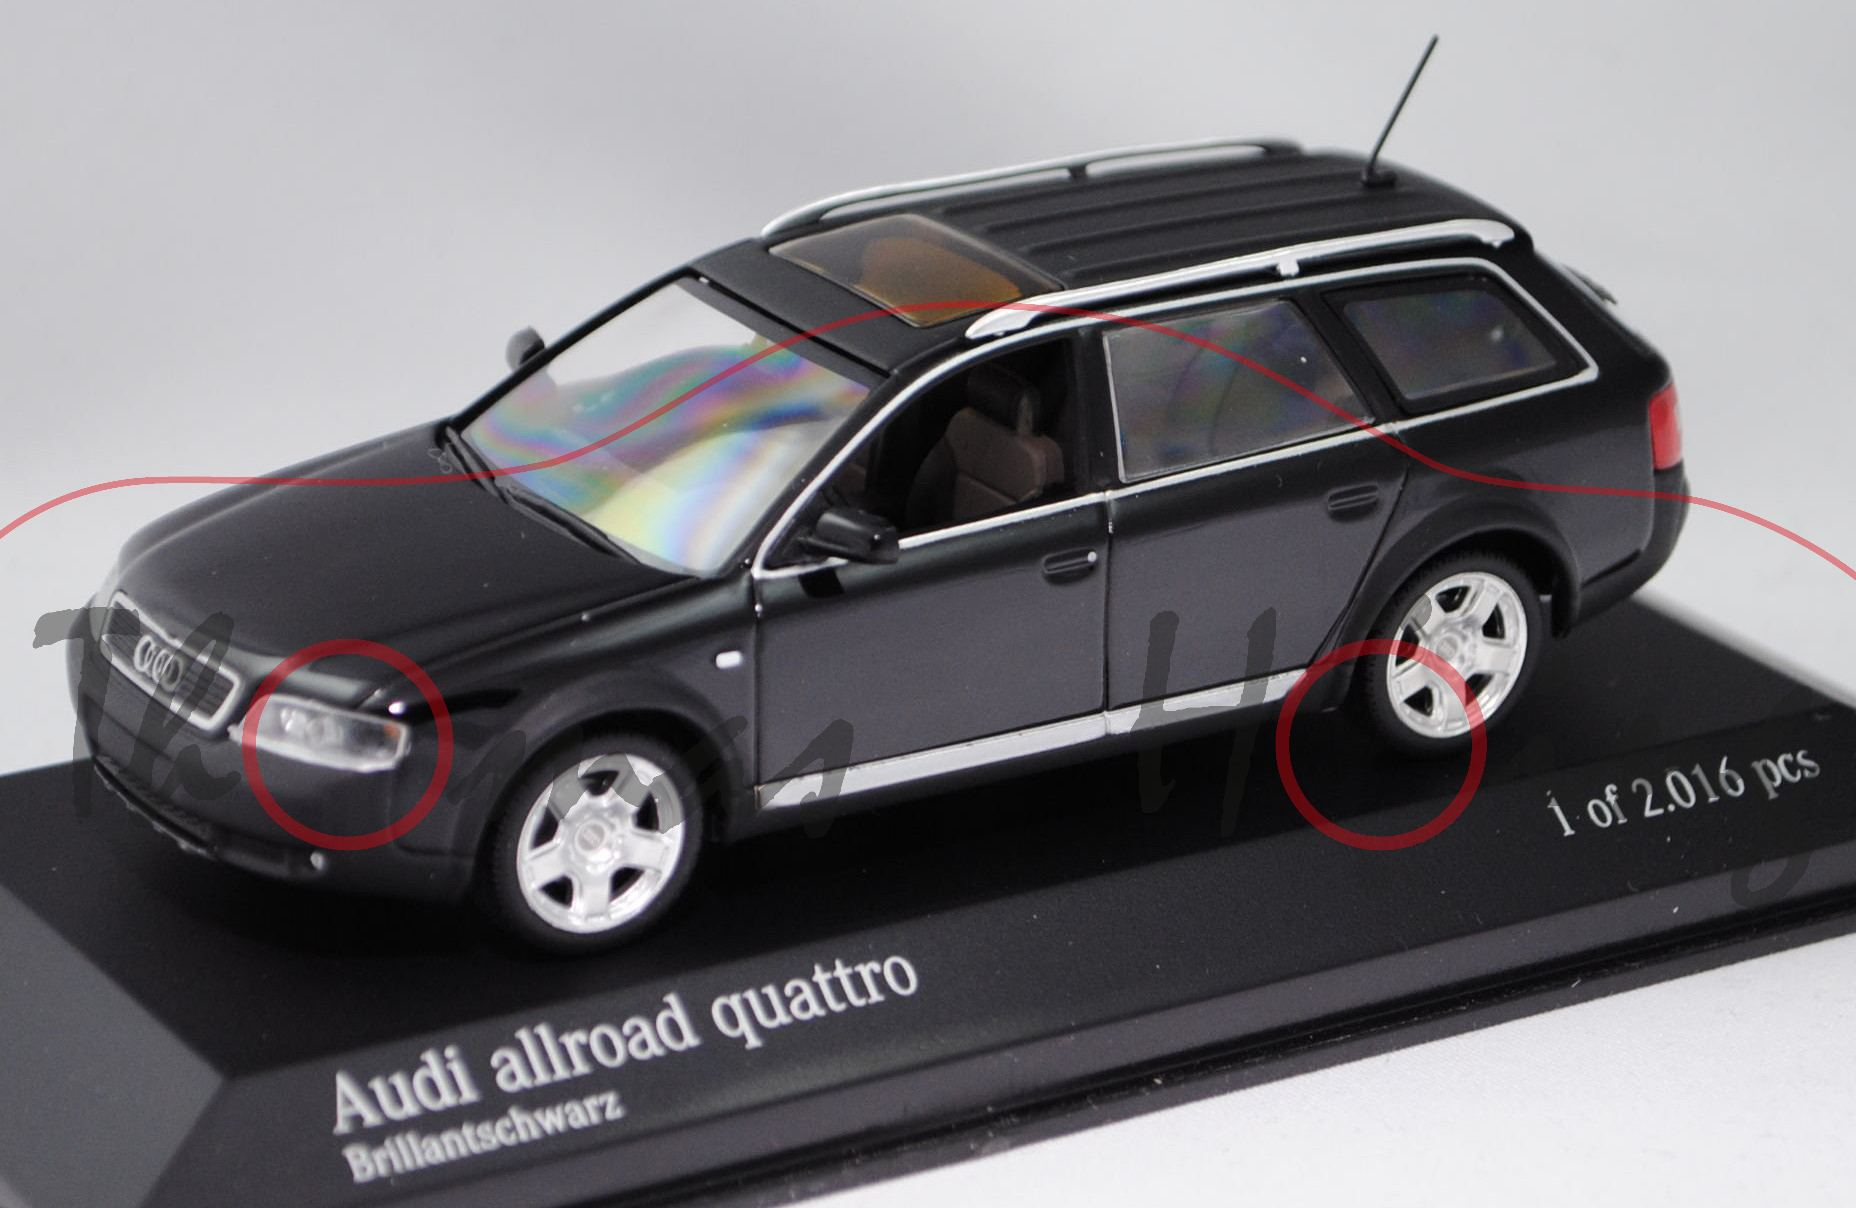 audi a6 allroad quattro c5 typ 4b modell 2000 2005. Black Bedroom Furniture Sets. Home Design Ideas